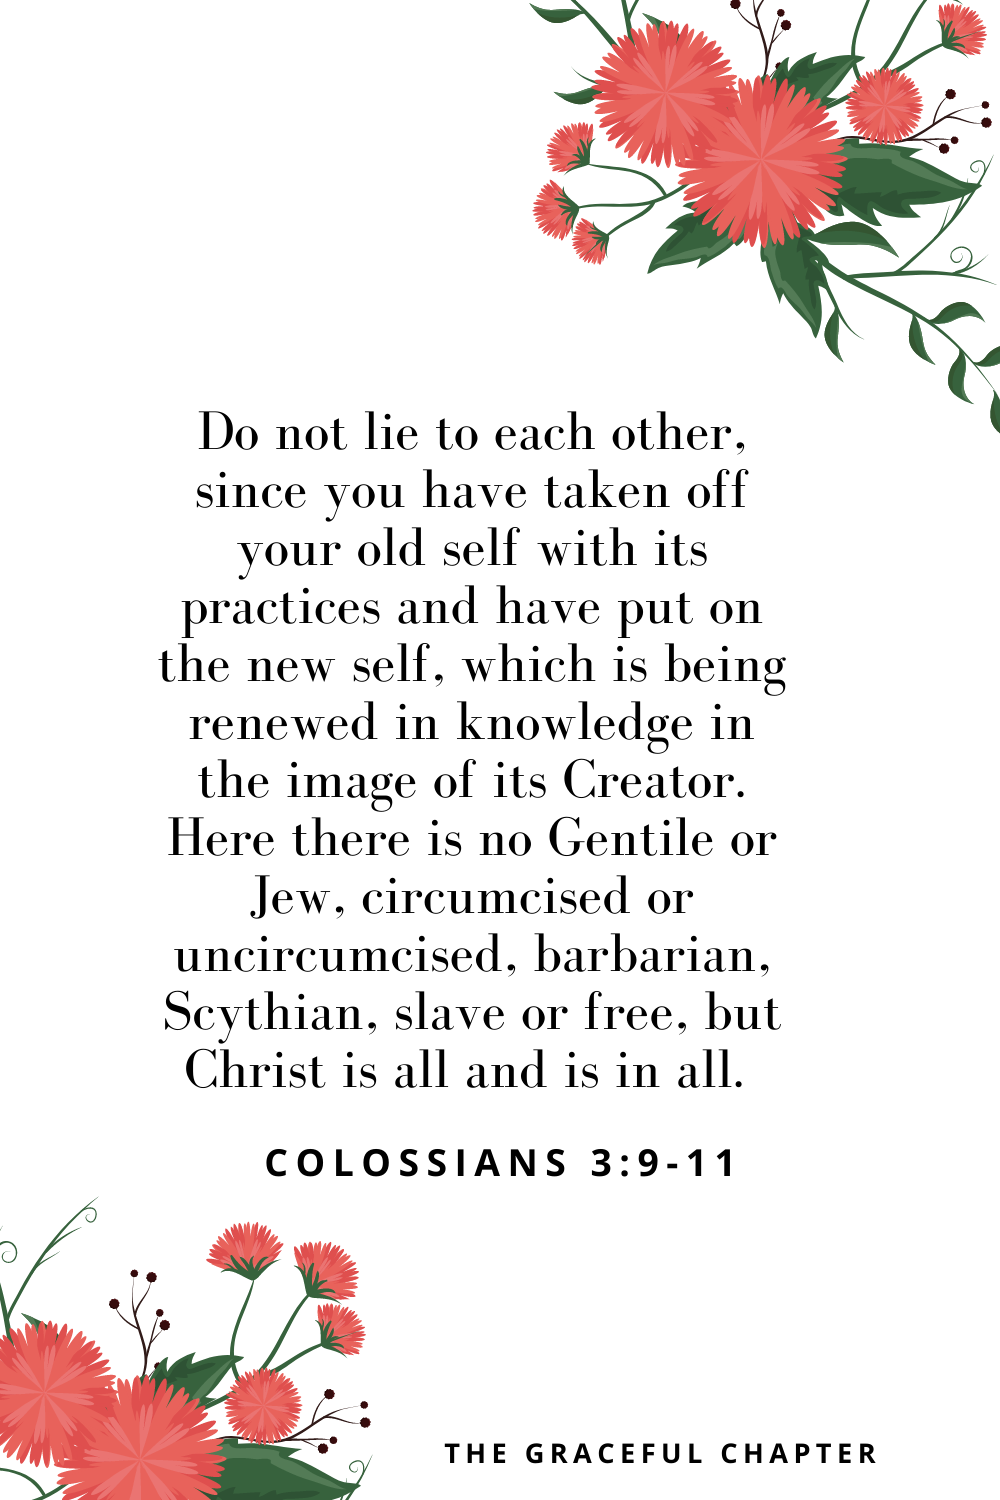 bible verses on new beginnings Colossians 3:9-11